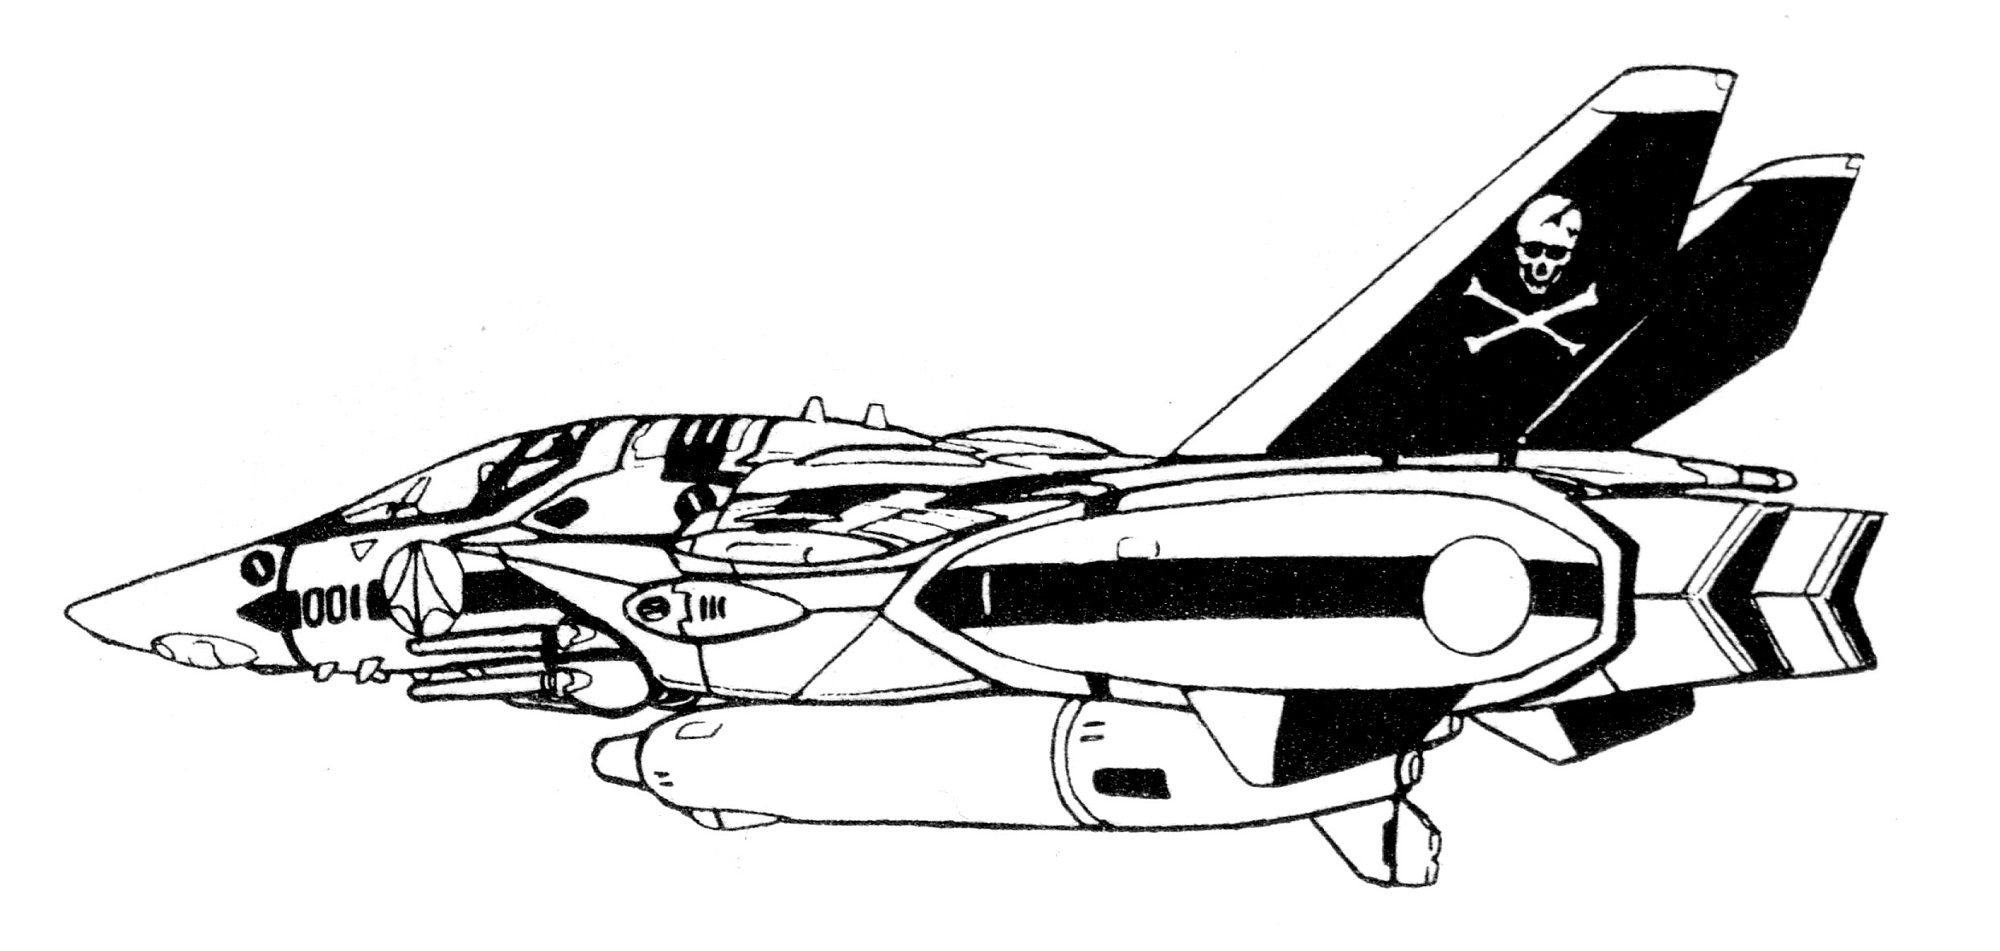 VF-1S Block 1 Valkyrie Fighter 15